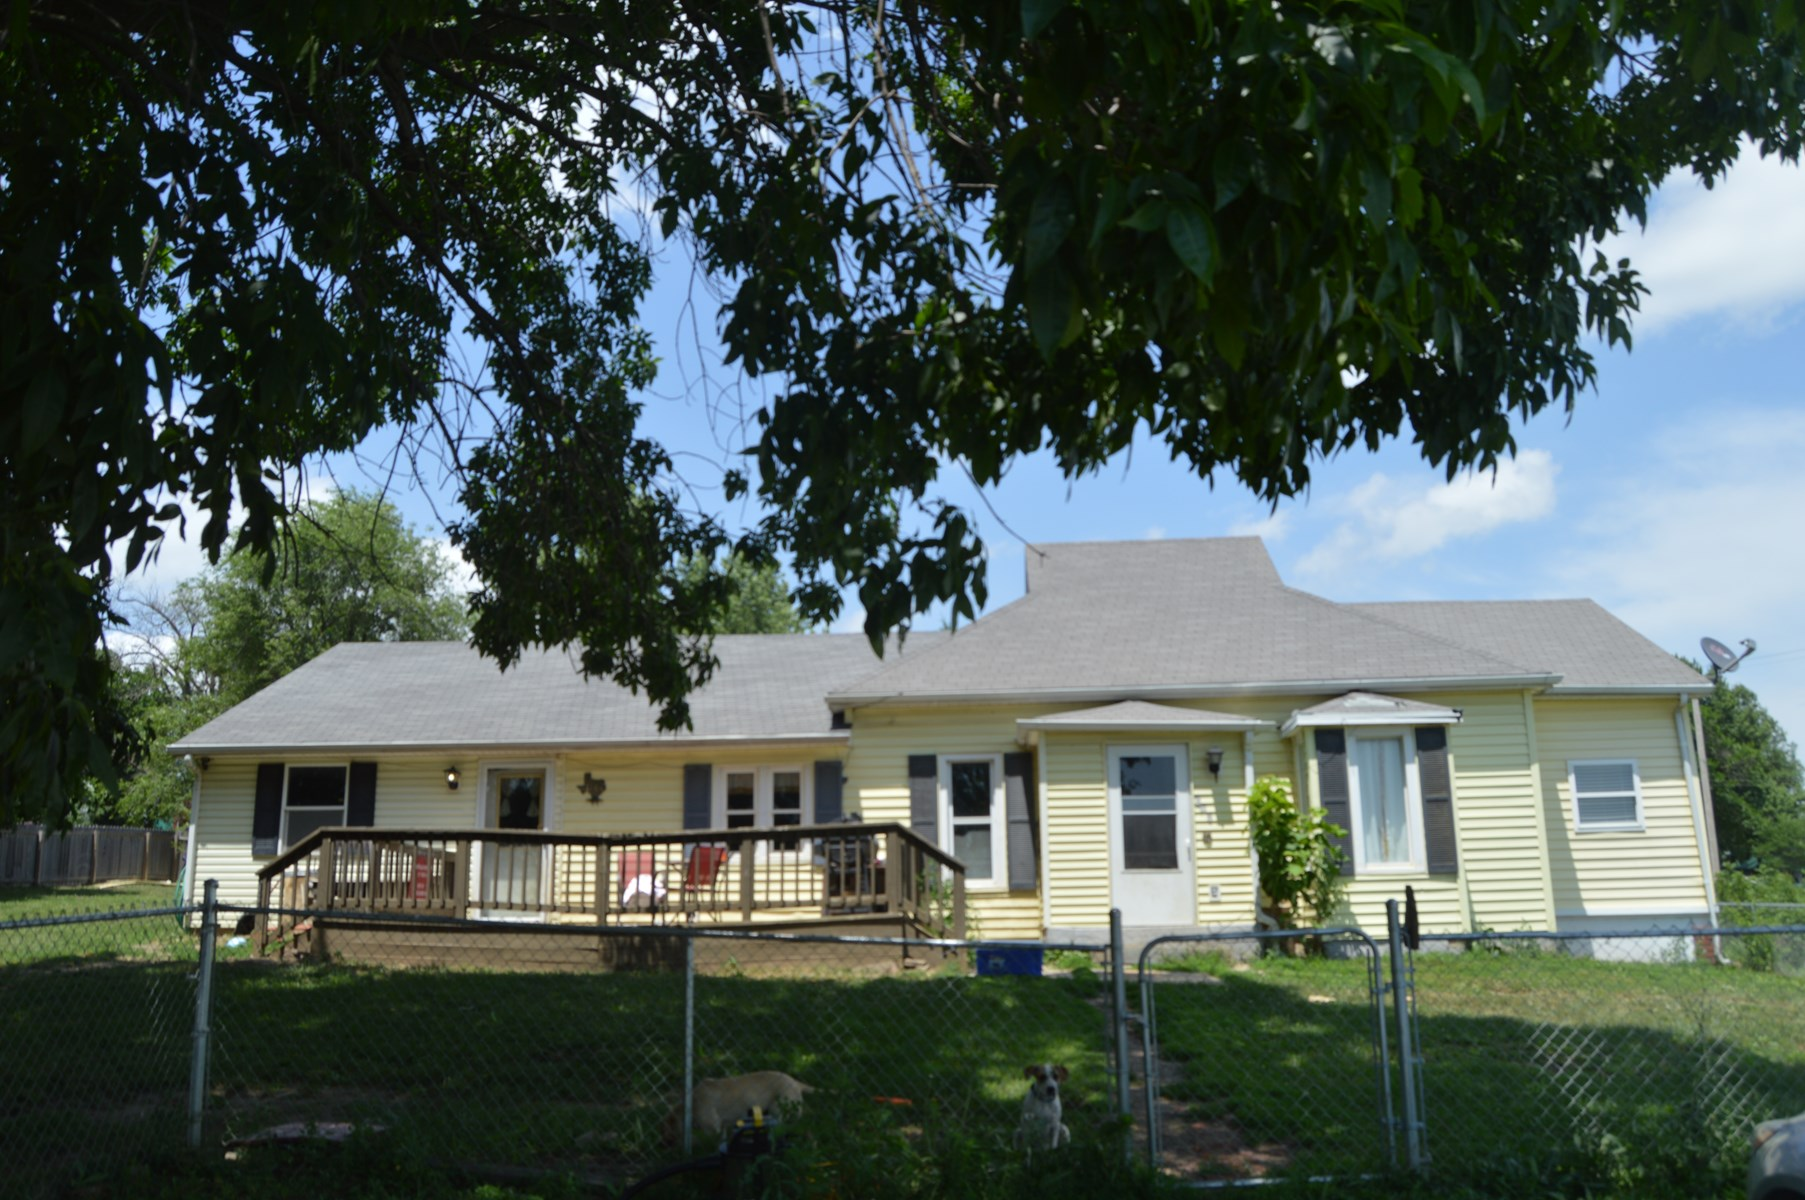 One Story Home For Sale in Rural NW Missouri Town